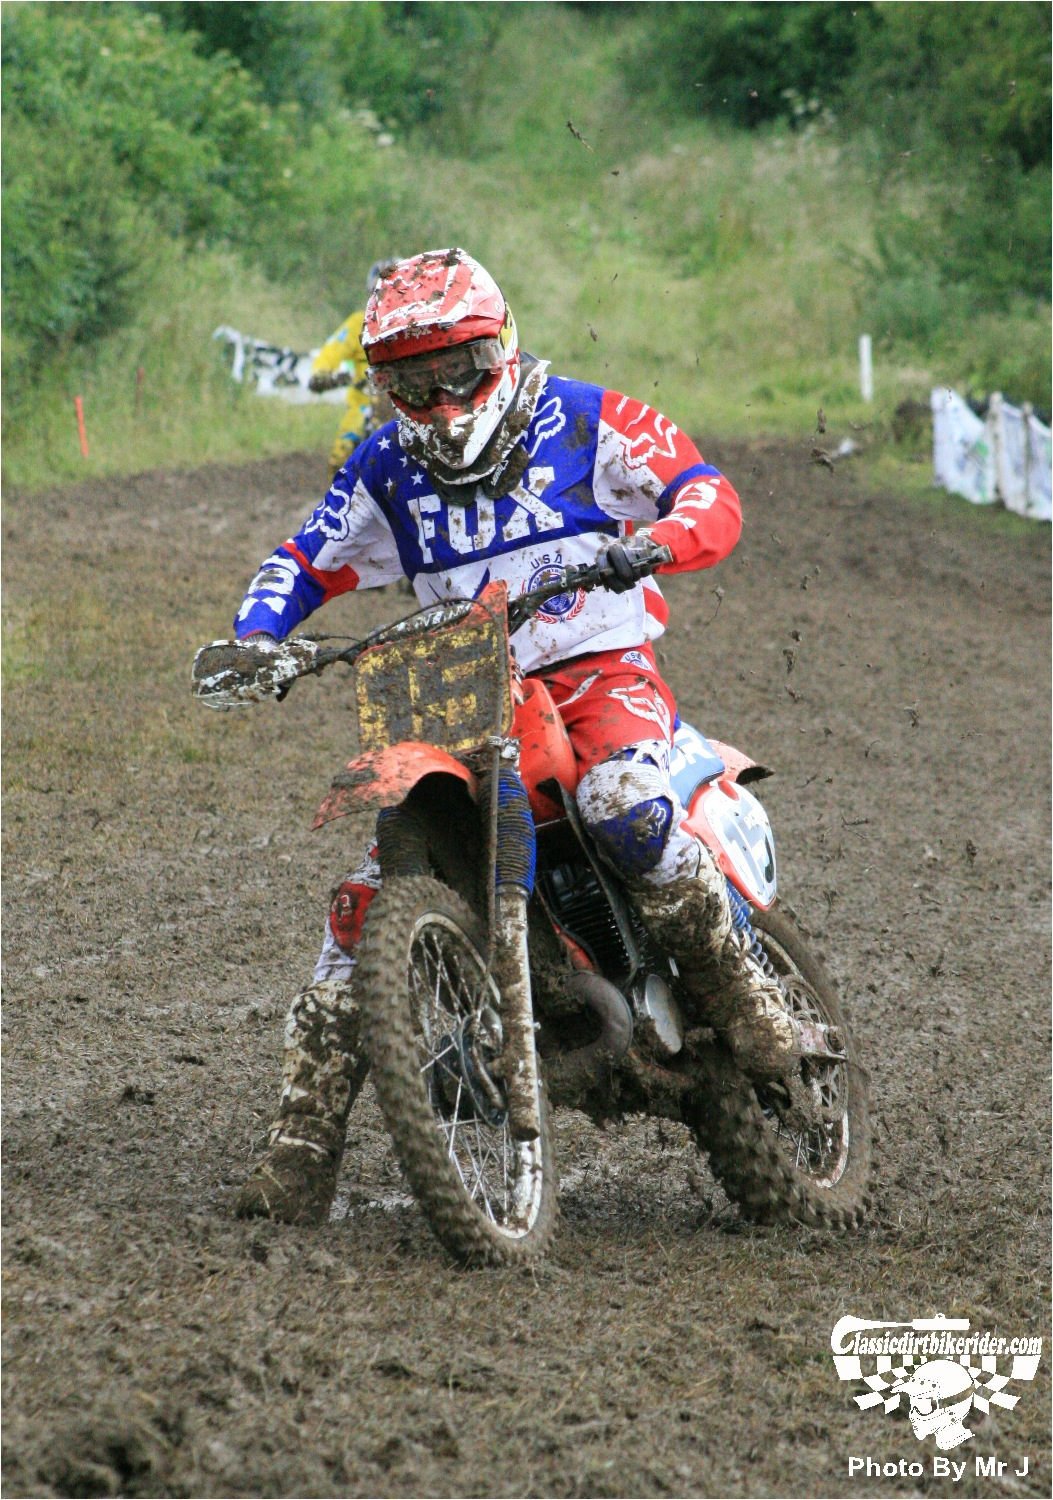 king of the castle 2015 photos Farleigh Castle twinshock motocross classicdirtbikerider.com 120